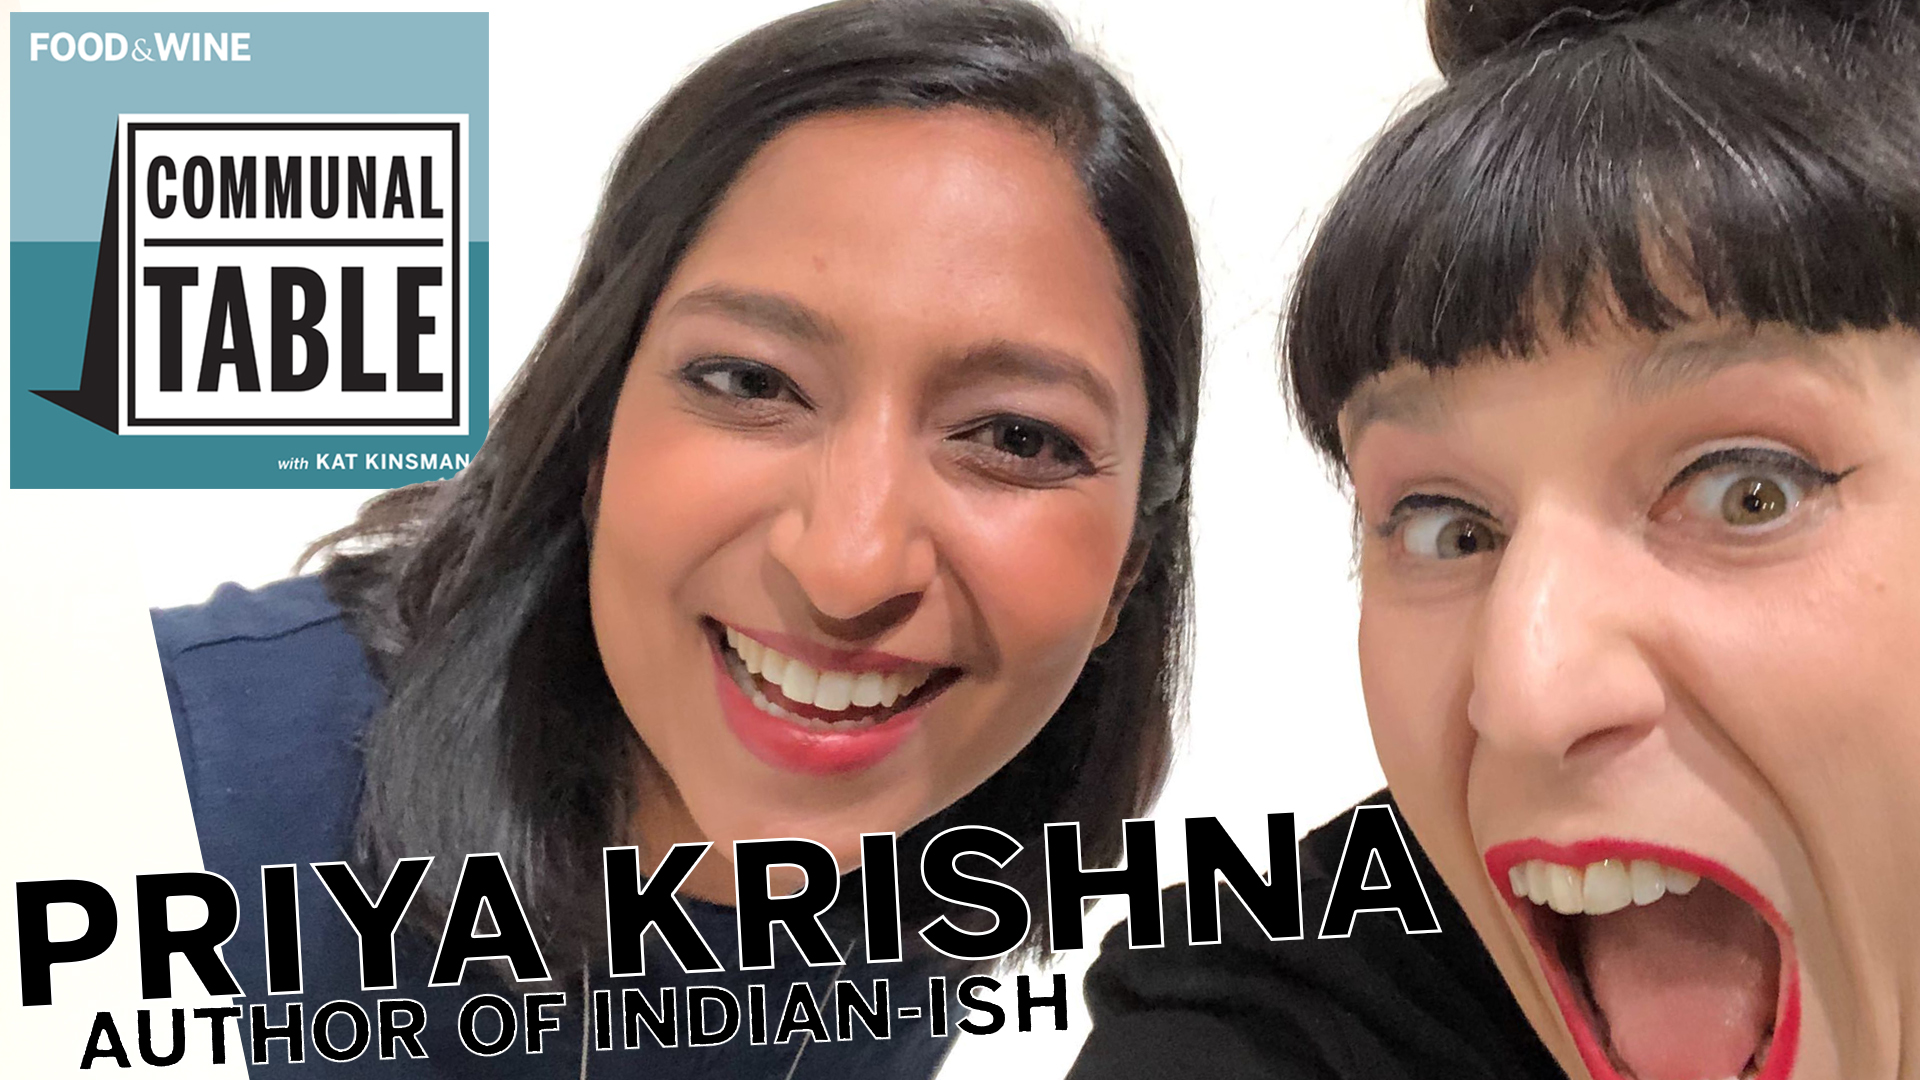 Communal Table Podcast: Priya Krishna